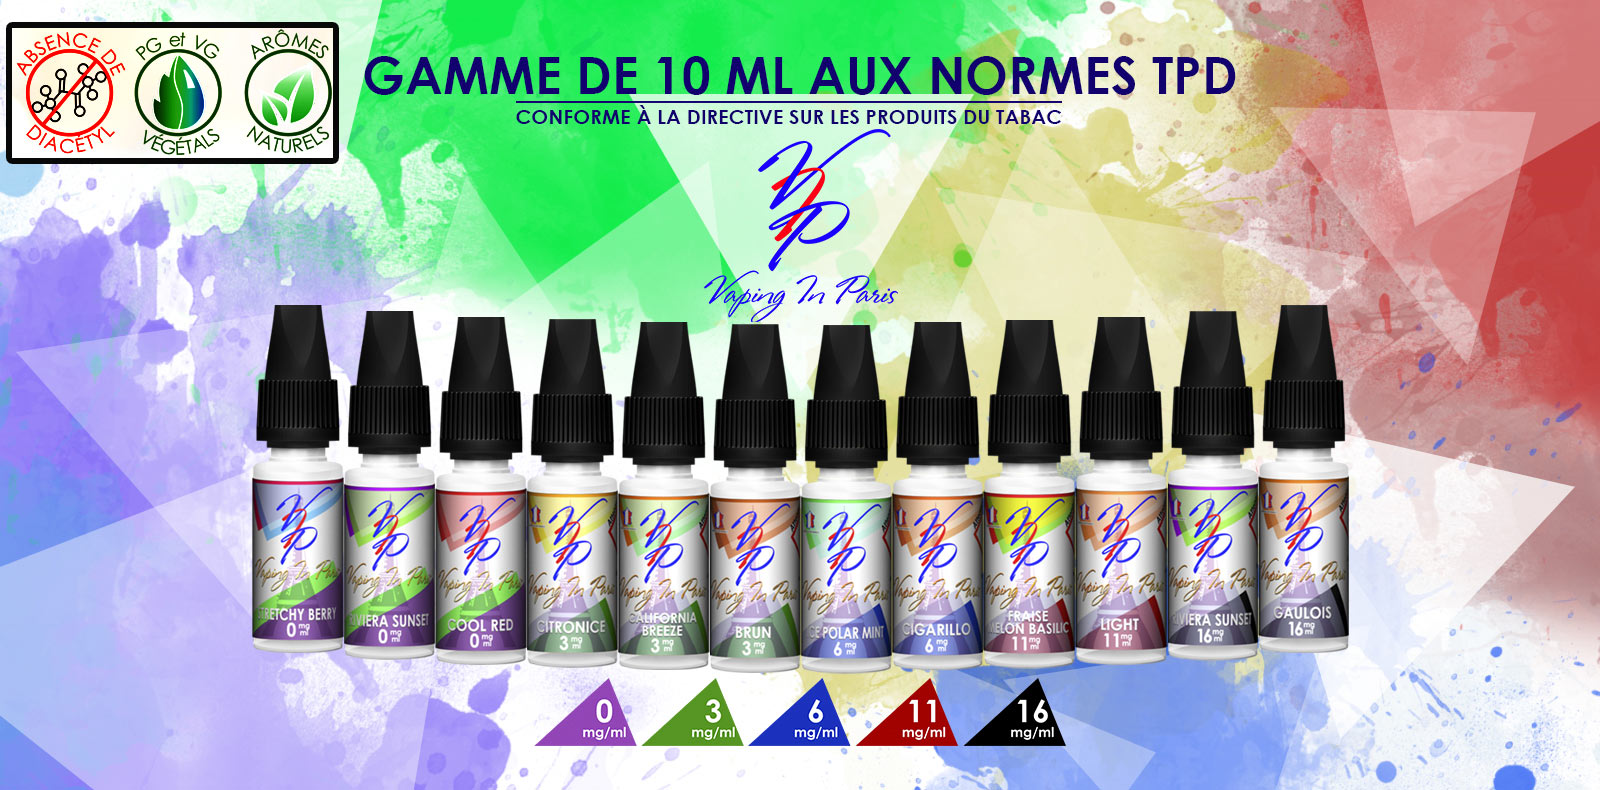 E-liquide pour cigarette electronique Vaping In Paris